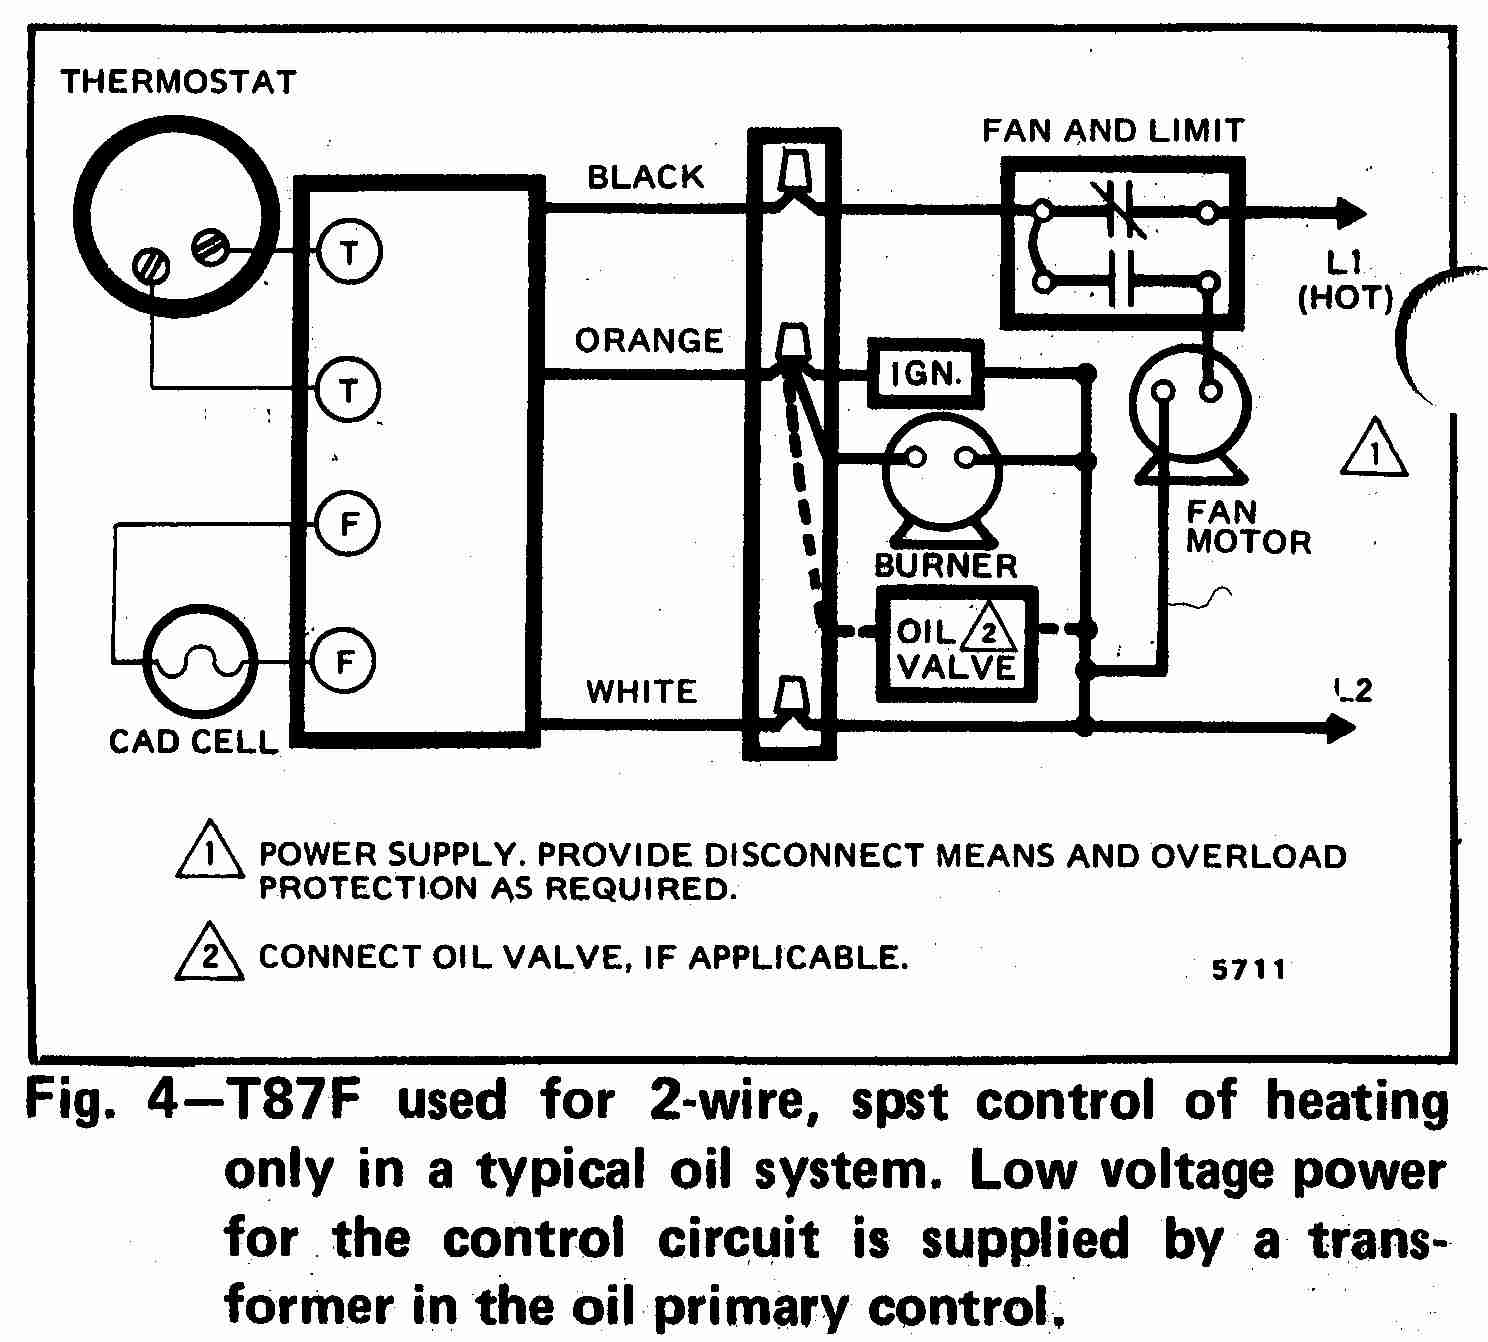 Motor Wiring Only Diagram Data Boat Lift With Capacitor Forward And Reverse Room Thermostat Diagrams For Hvac Systems Chair Honeywell T87f